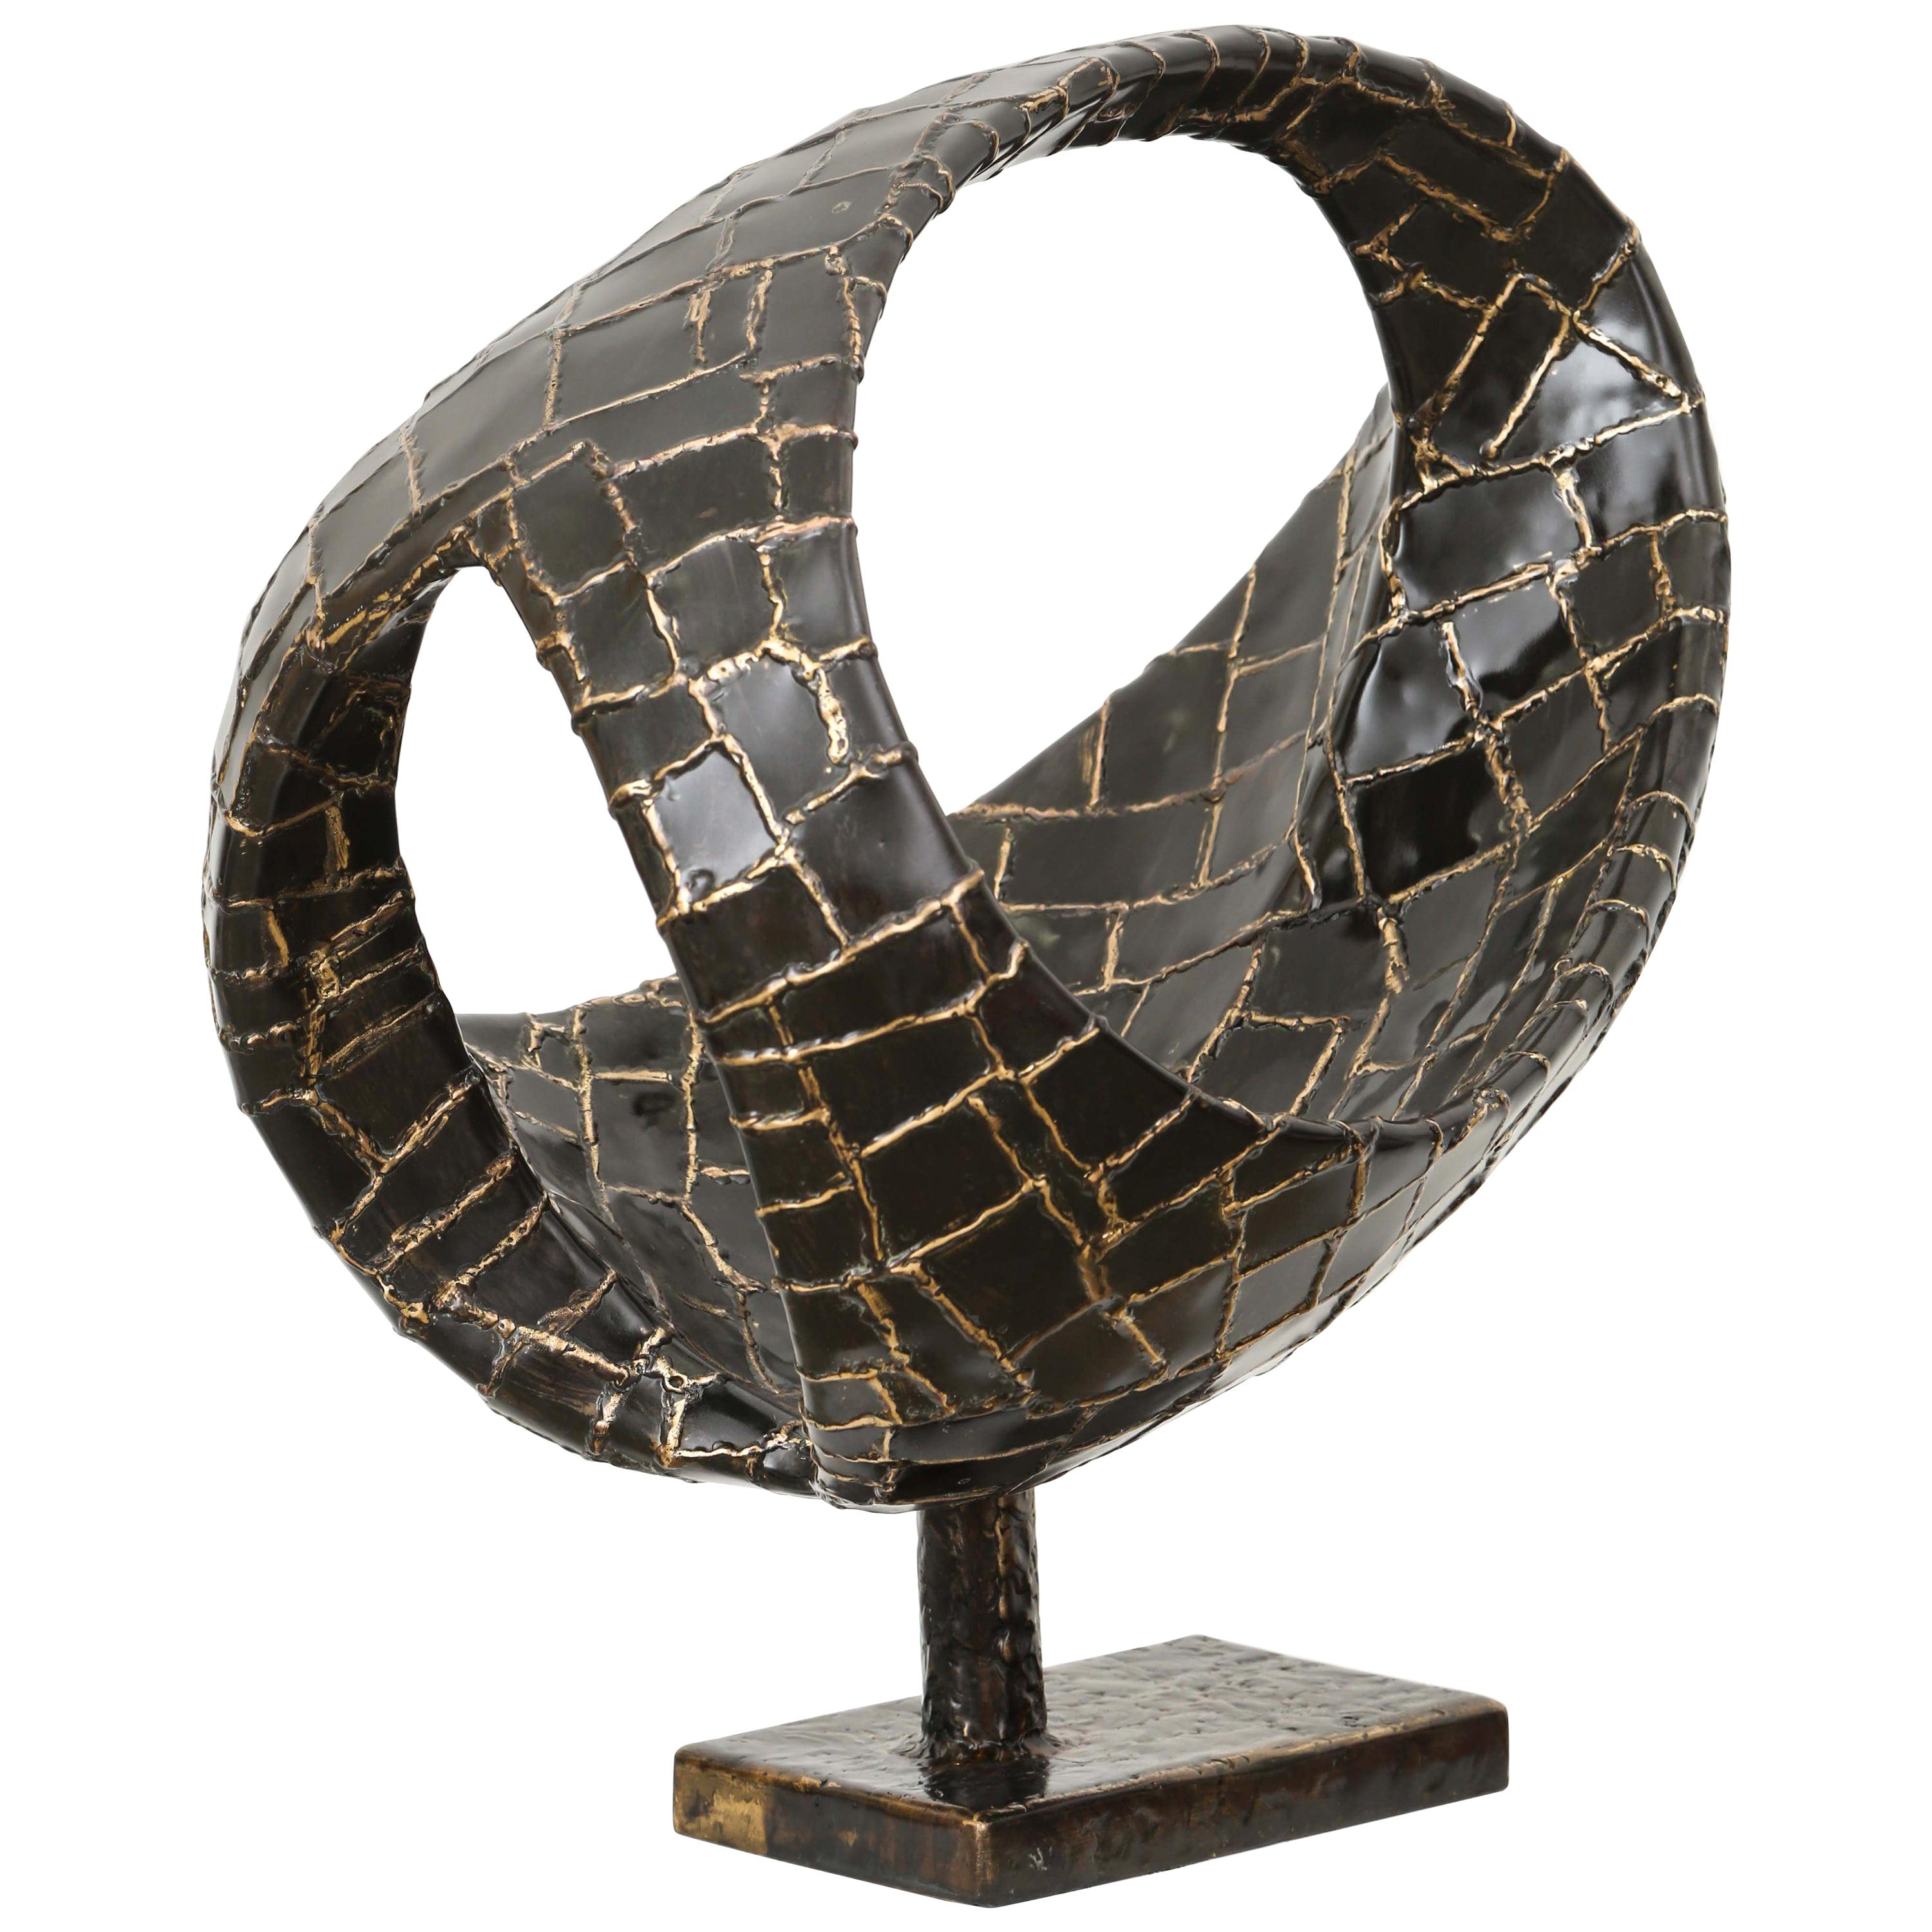 20th Century Abstract Oval Bronze Sculpture by Jacques Duval-Brasseur